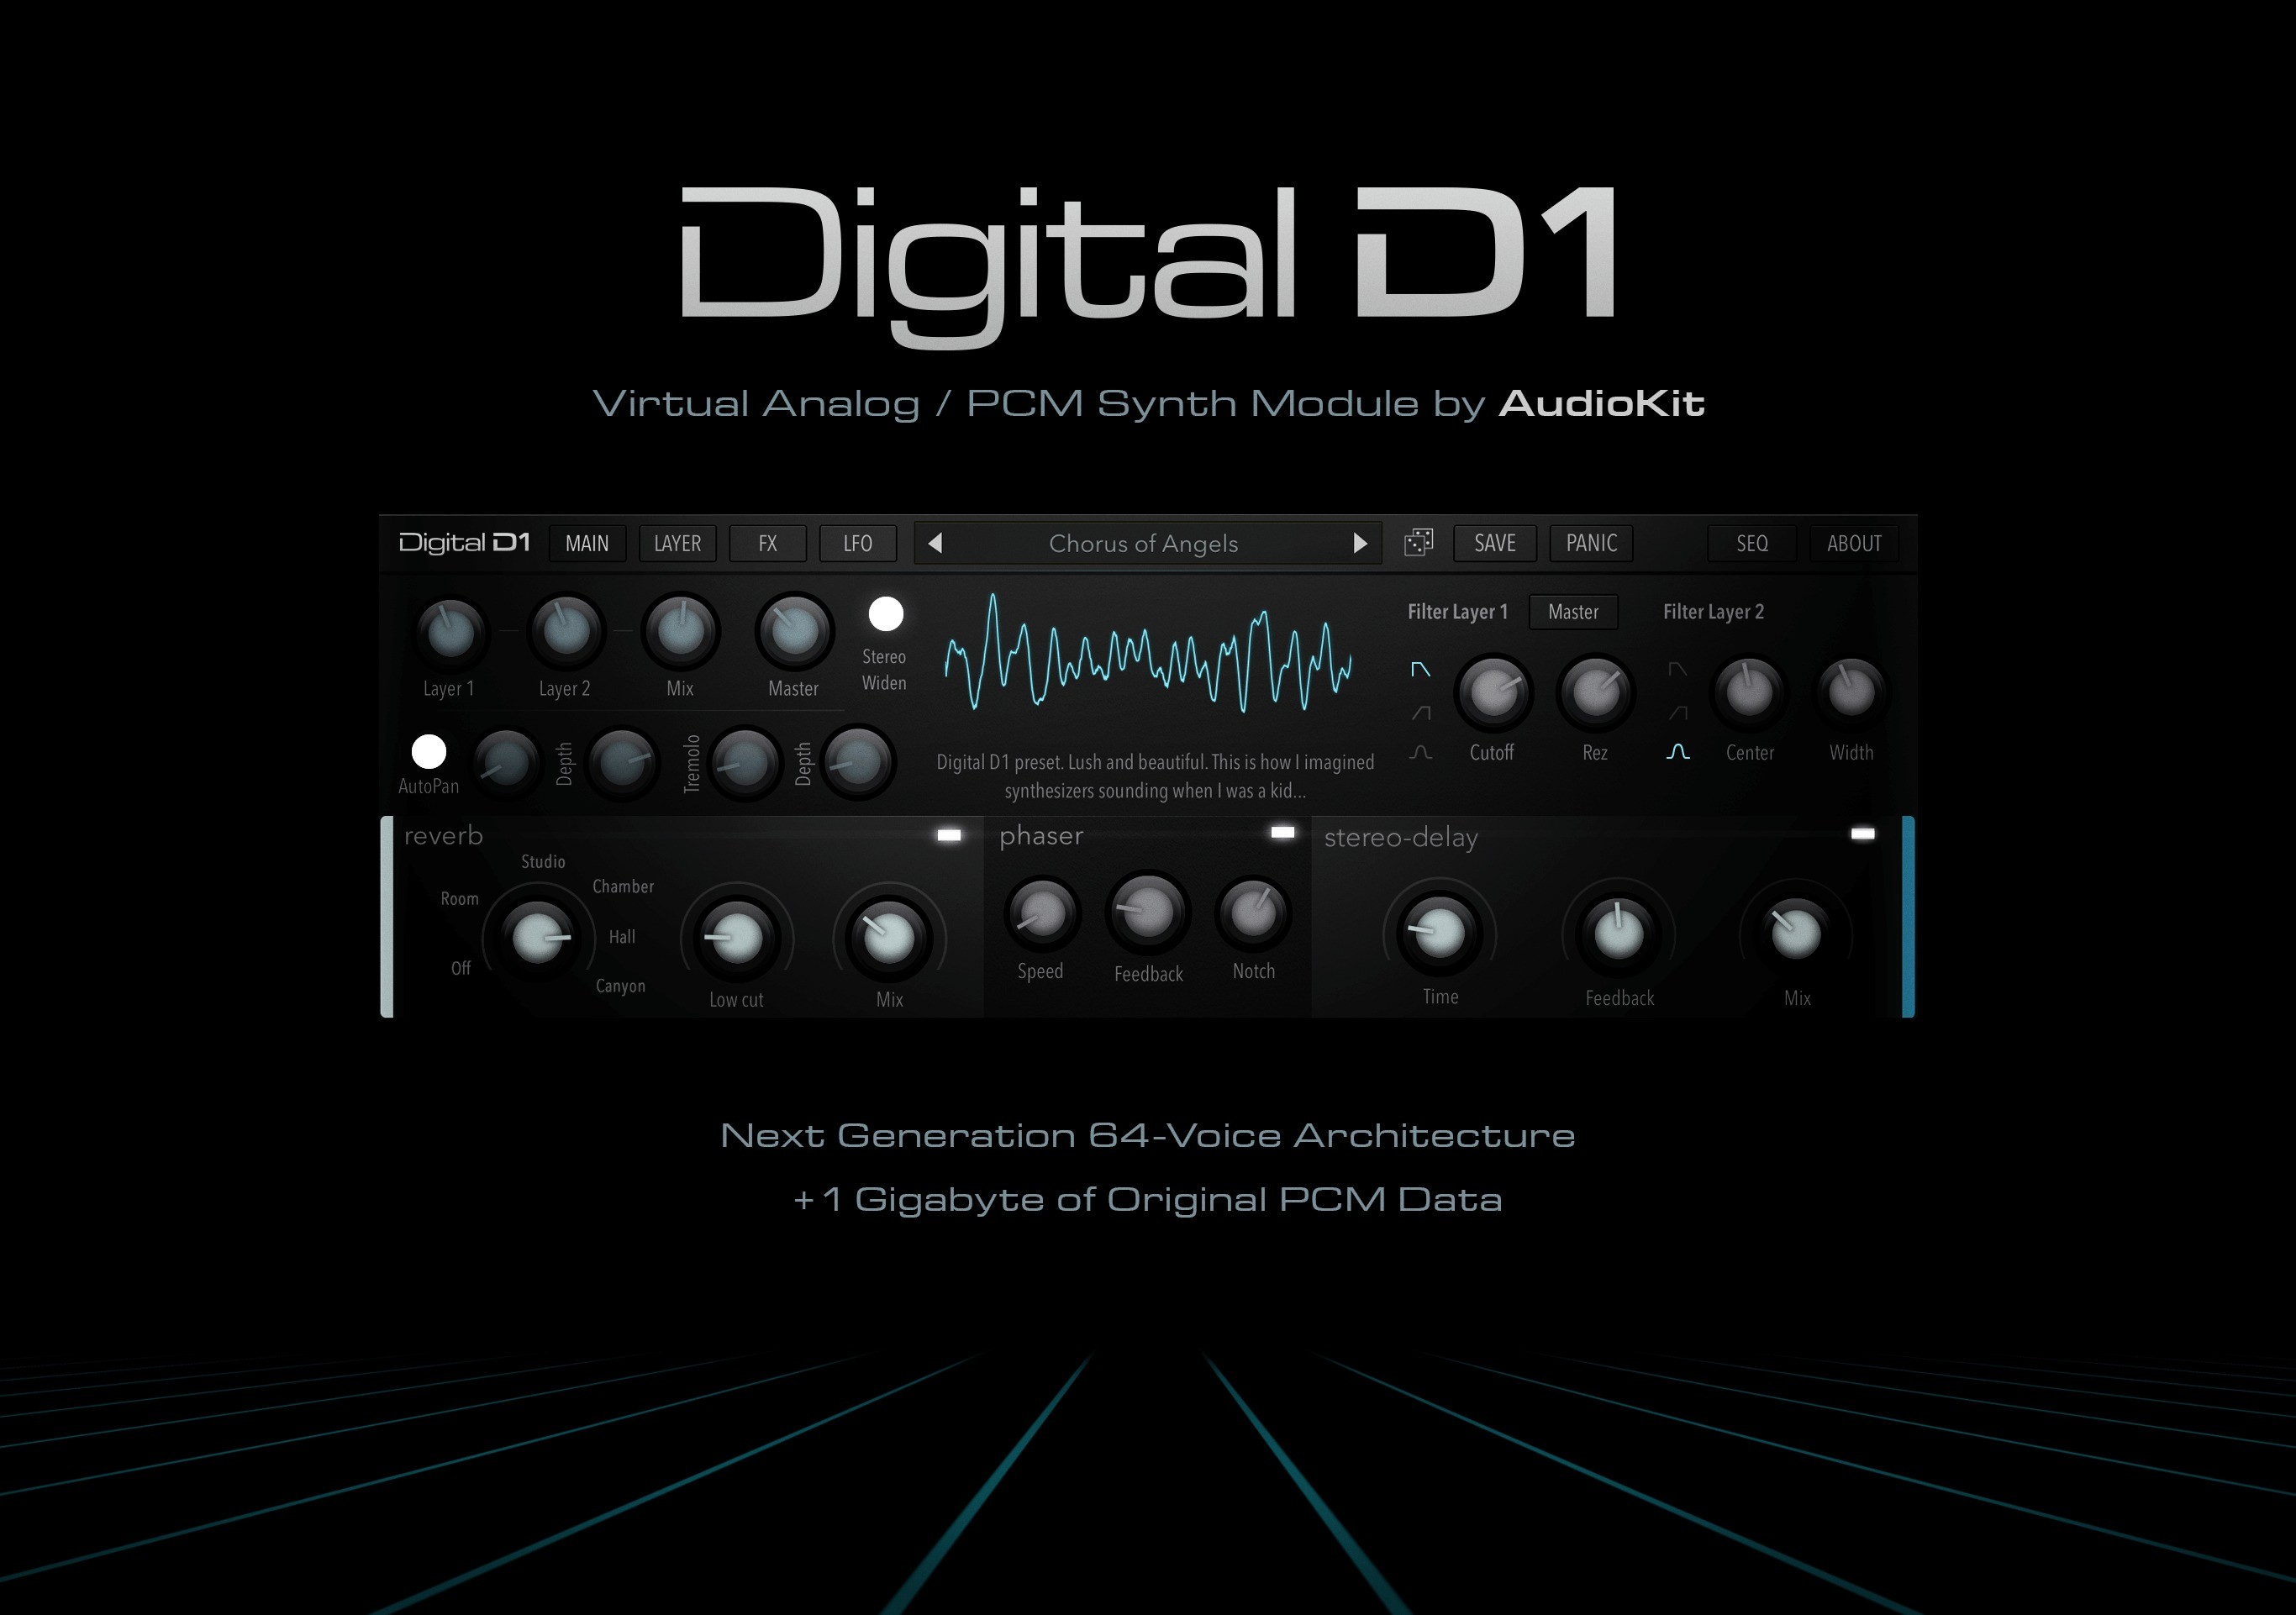 AudioKit Digital D1 Synthesizer V1 1 Adds AUv3 Plugin Support